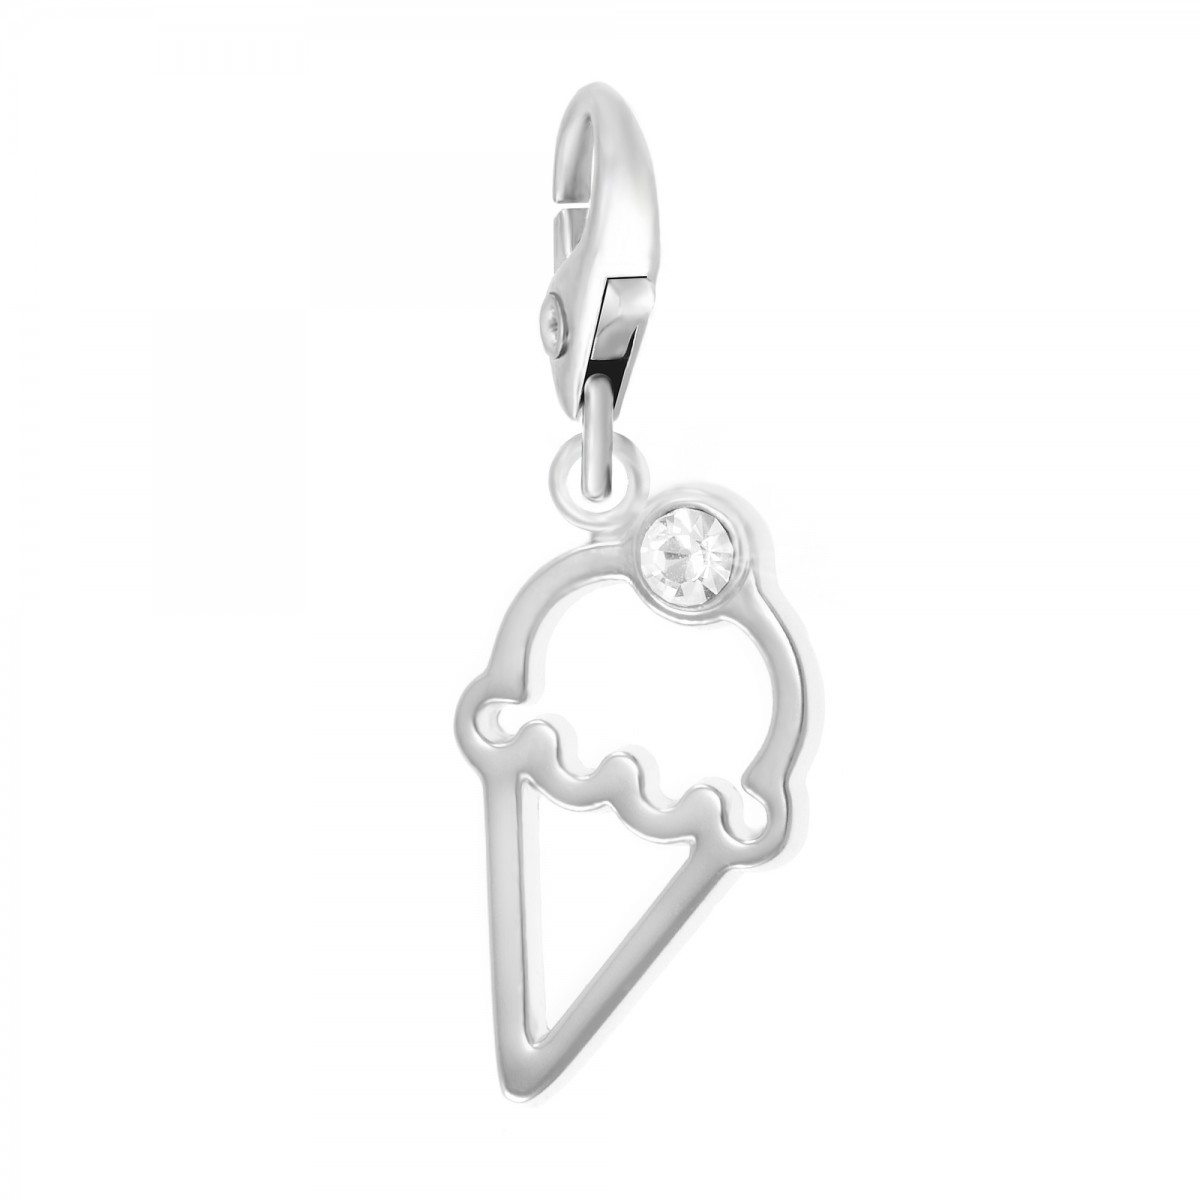 Charm Glace So Charm made with Crystal from Swarovski